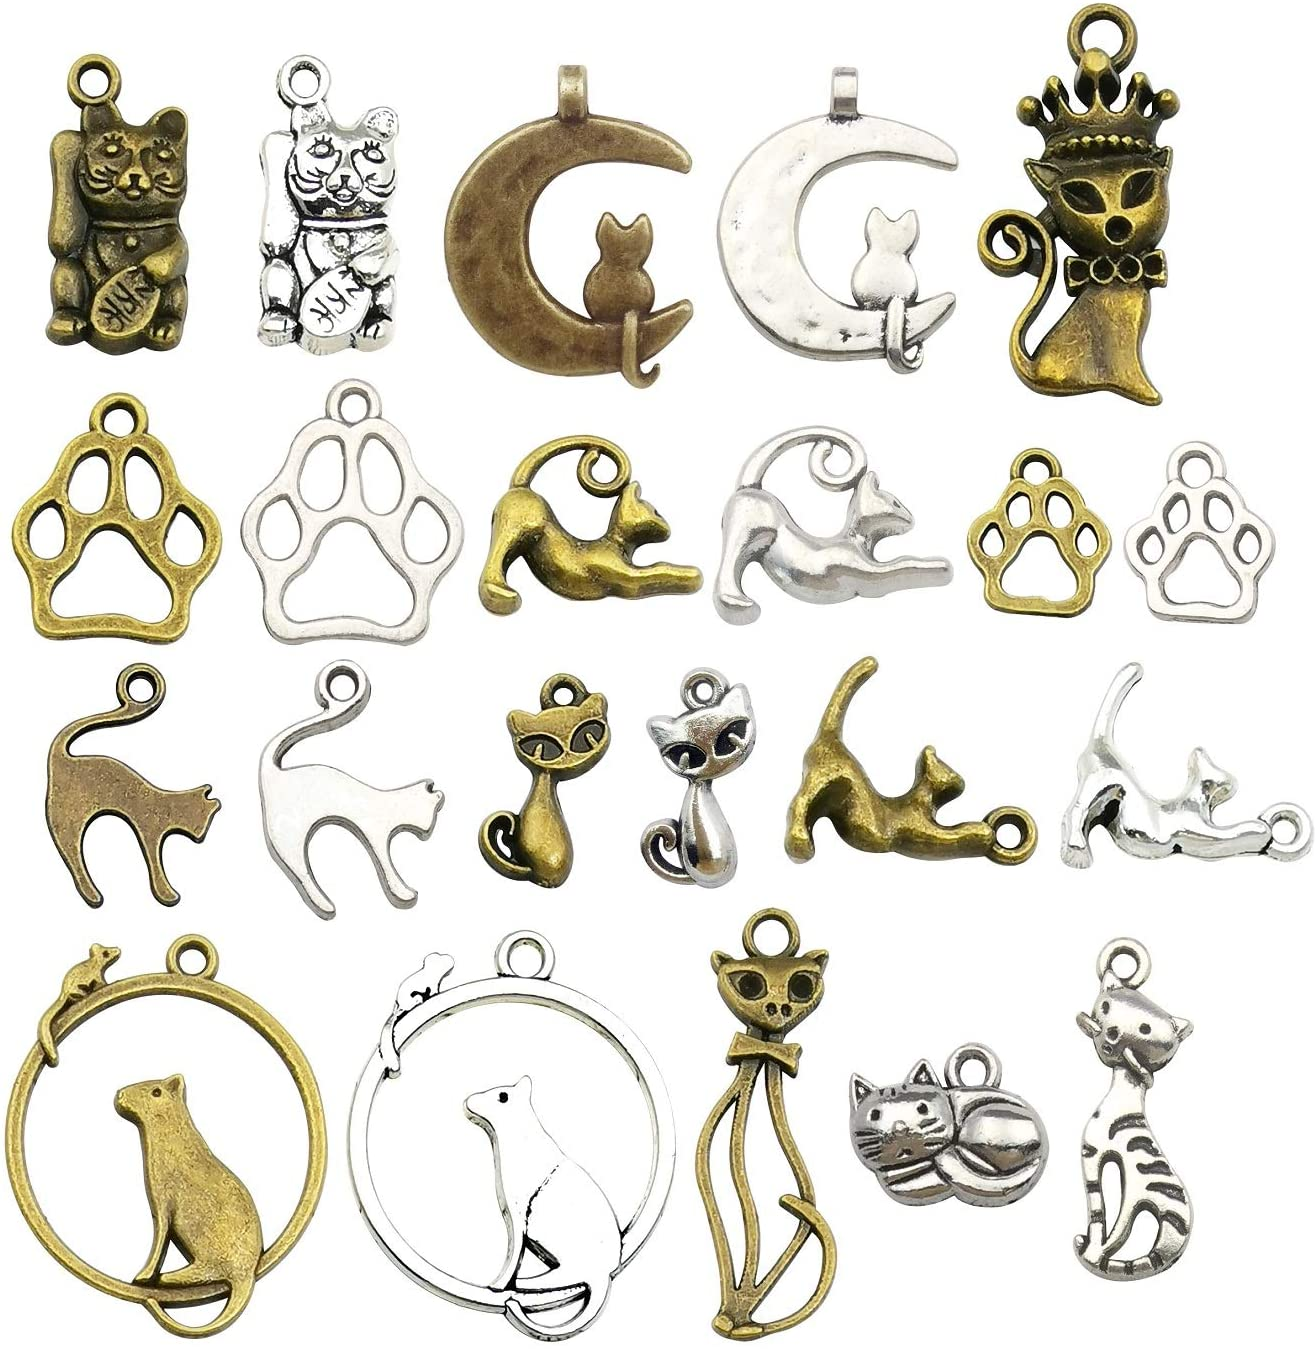 iloveDIYbeads 100g (65pcs) Craft Supplies Small Antique Silver Bronz Animals Cats Charms Pendants for Crafting, Jewelry Findings Making Accessory for DIY Necklace Bracelet (M180)